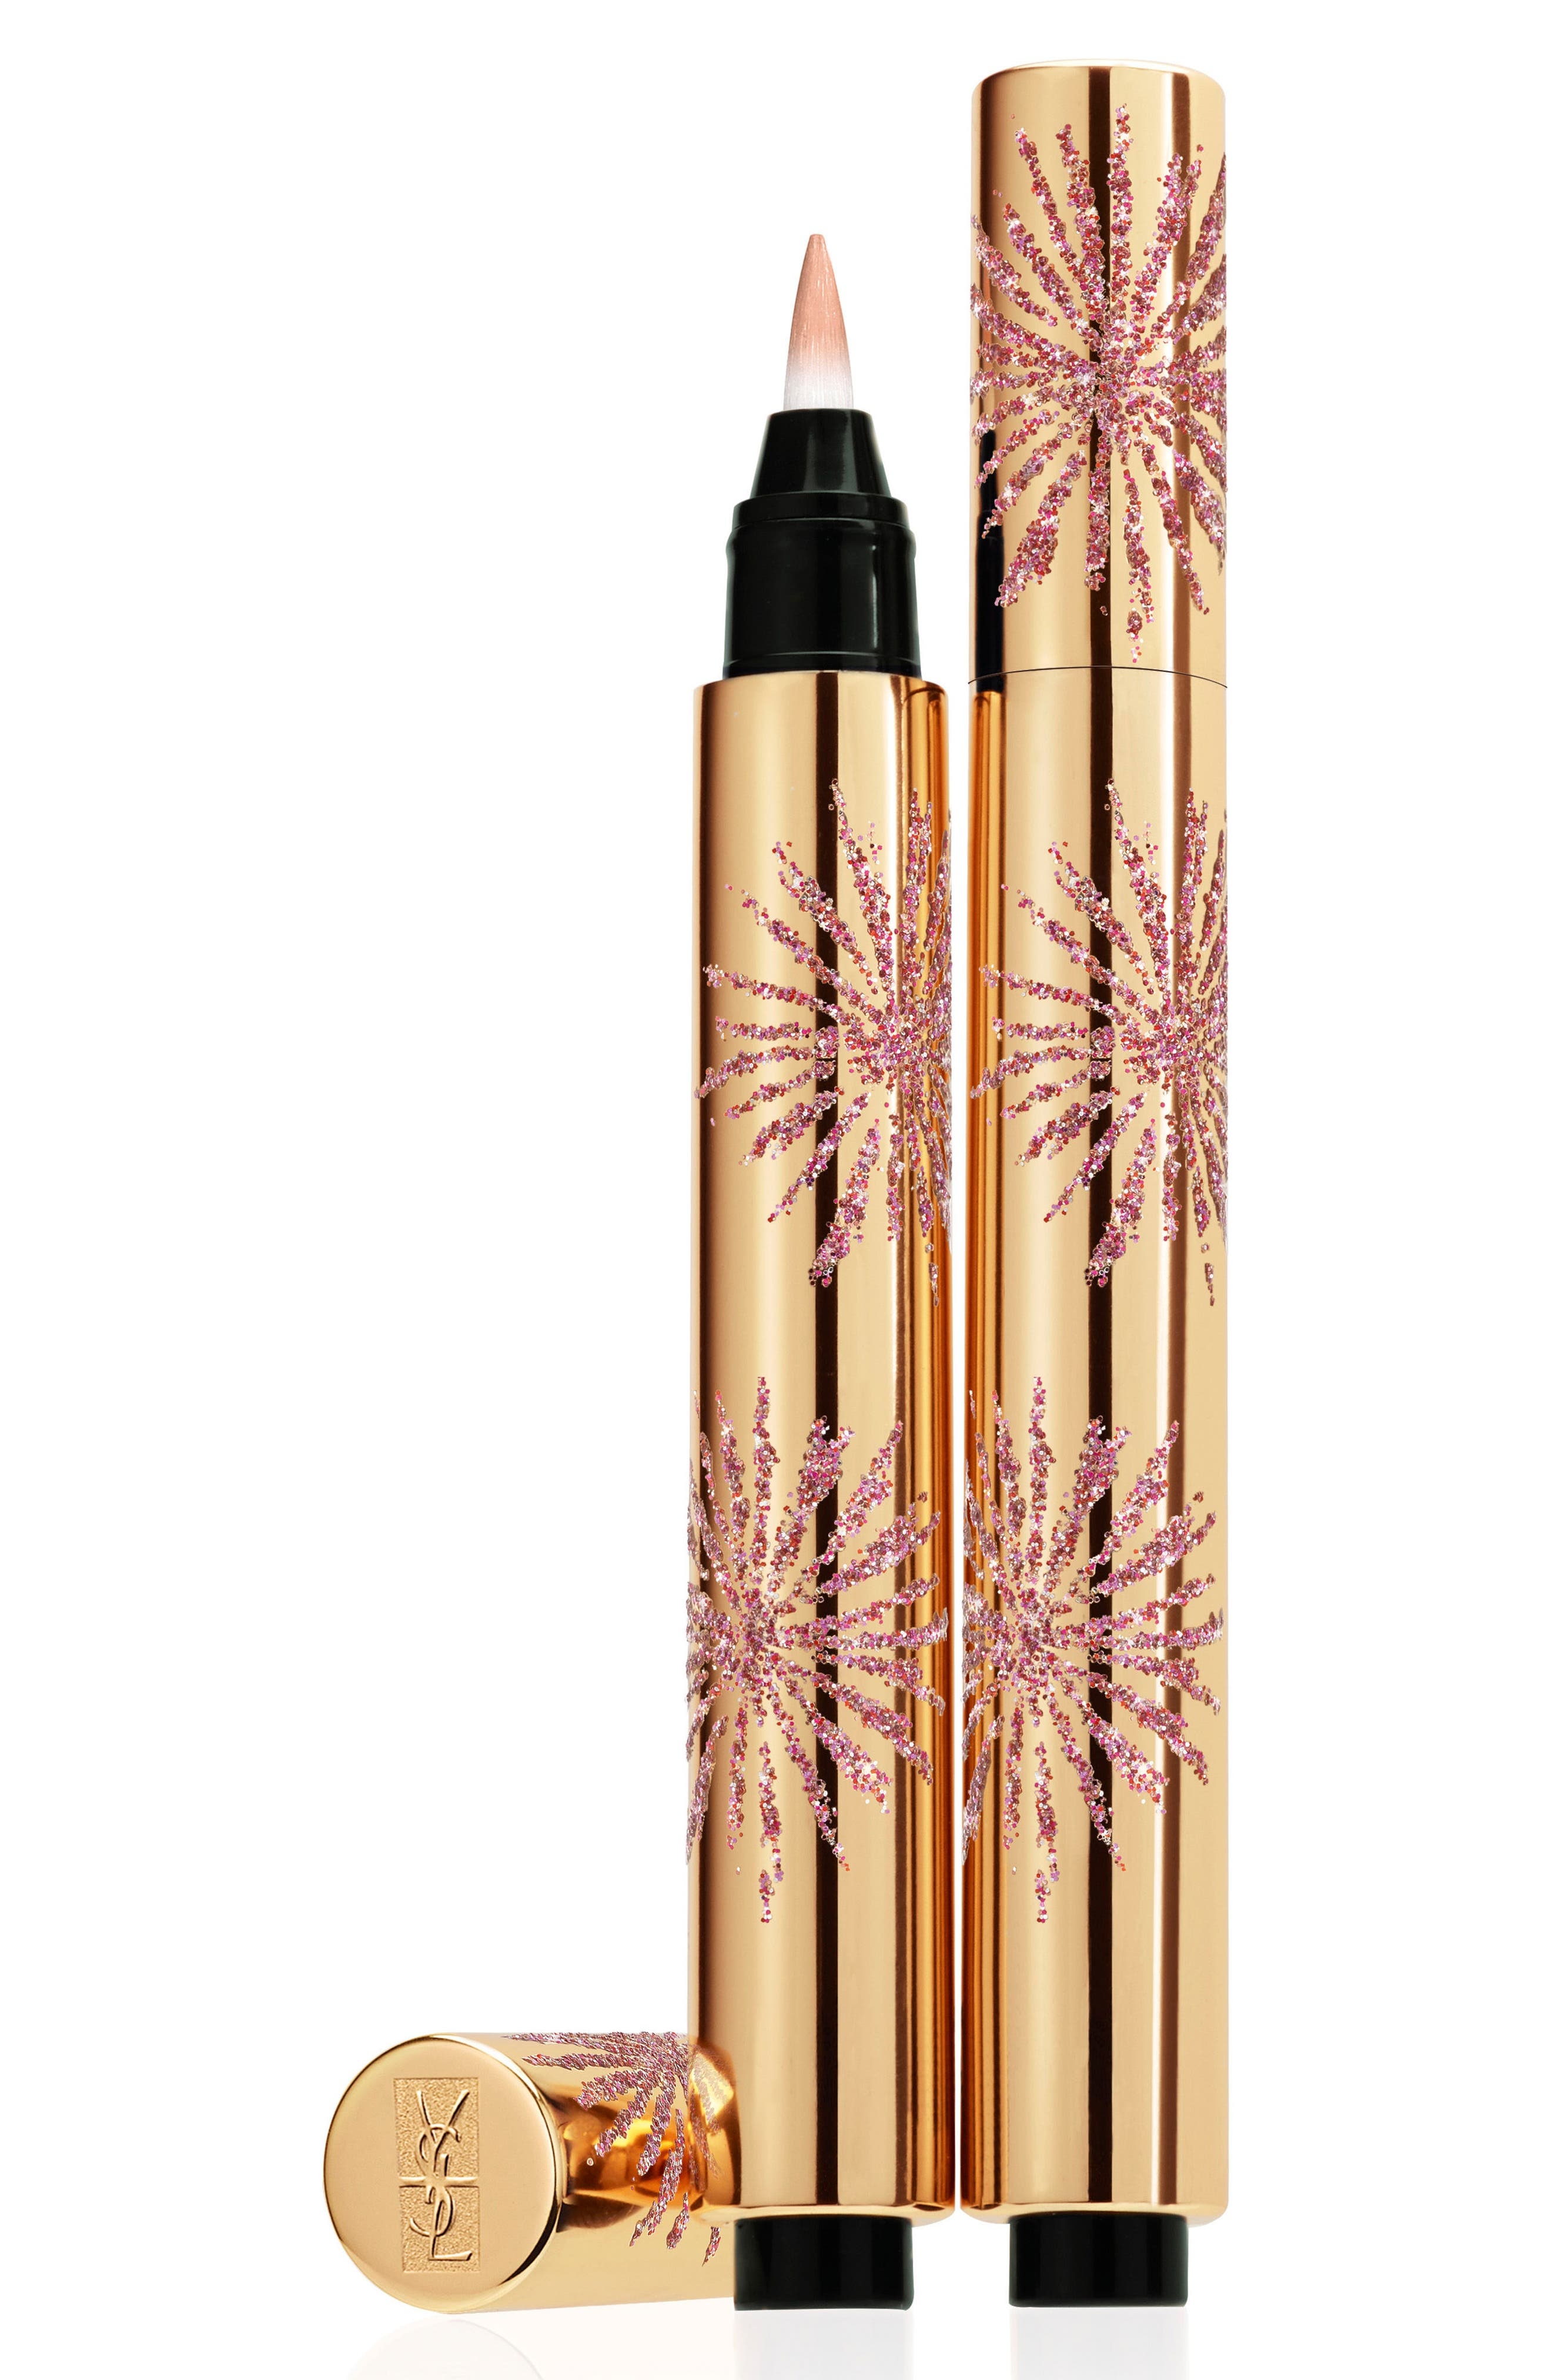 Yves Saint Laurent Dazzling Lights Touche Éclat Radiance Perfecting Pen (Limited Edition)